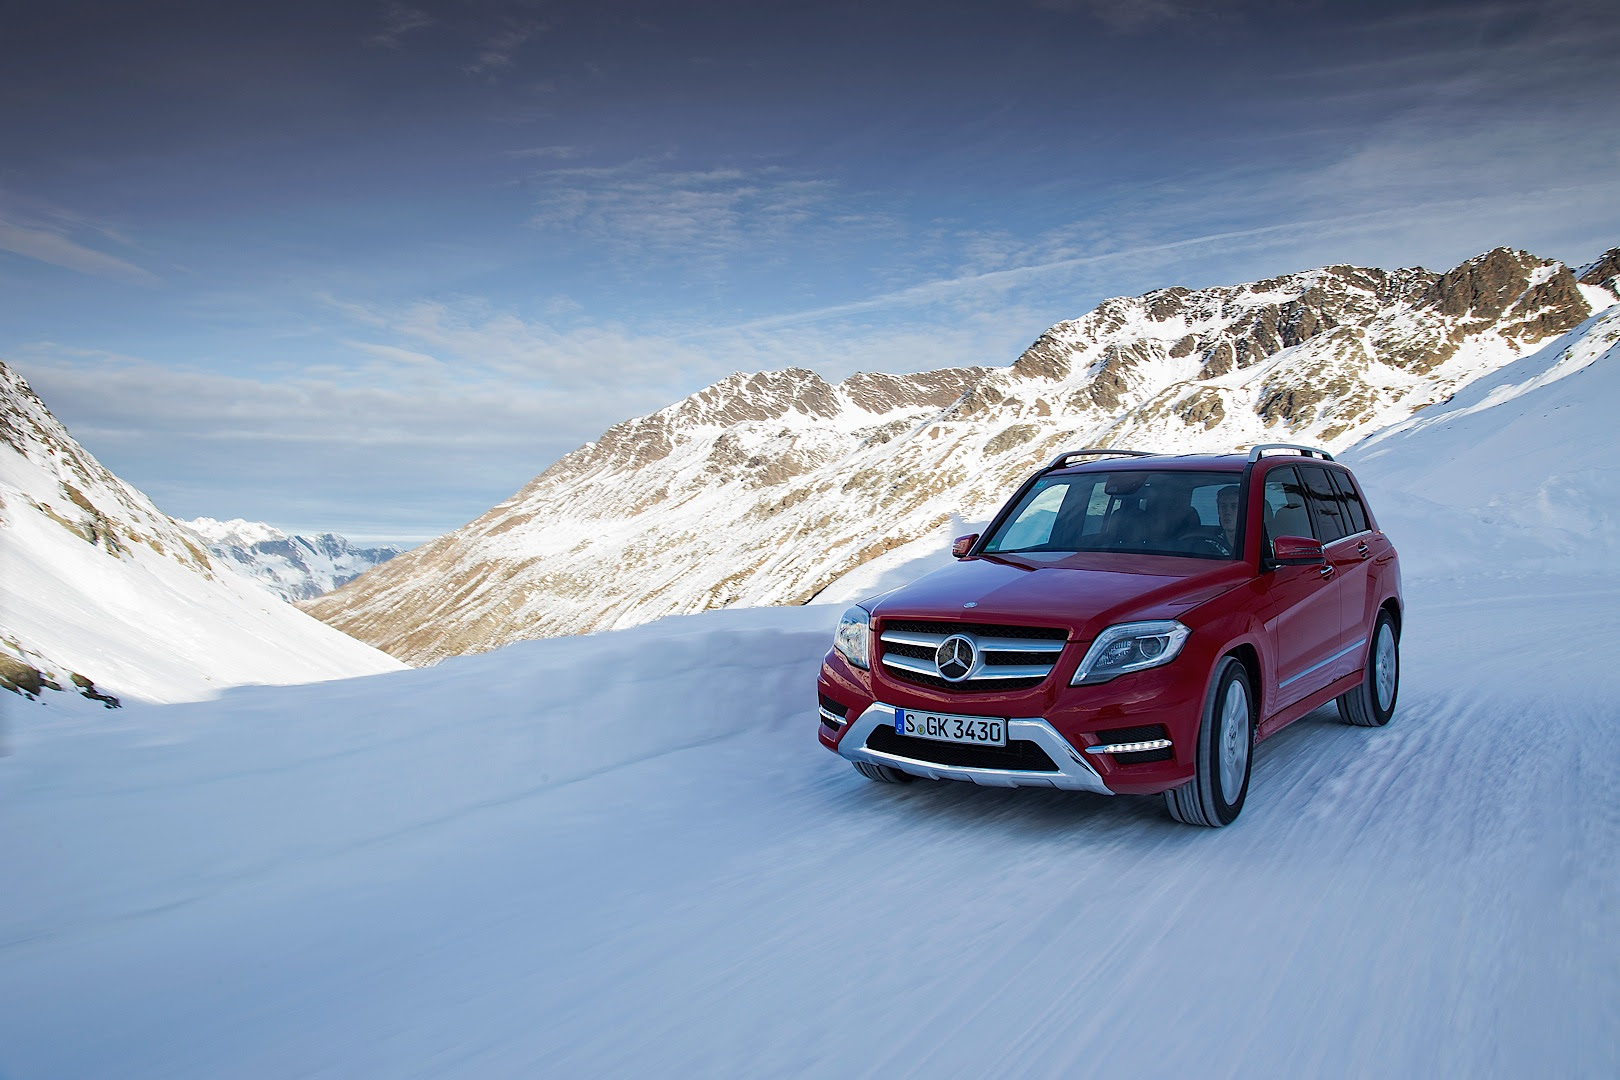 Mercedes-Benz Builds The Most Reliable Cars According to ...